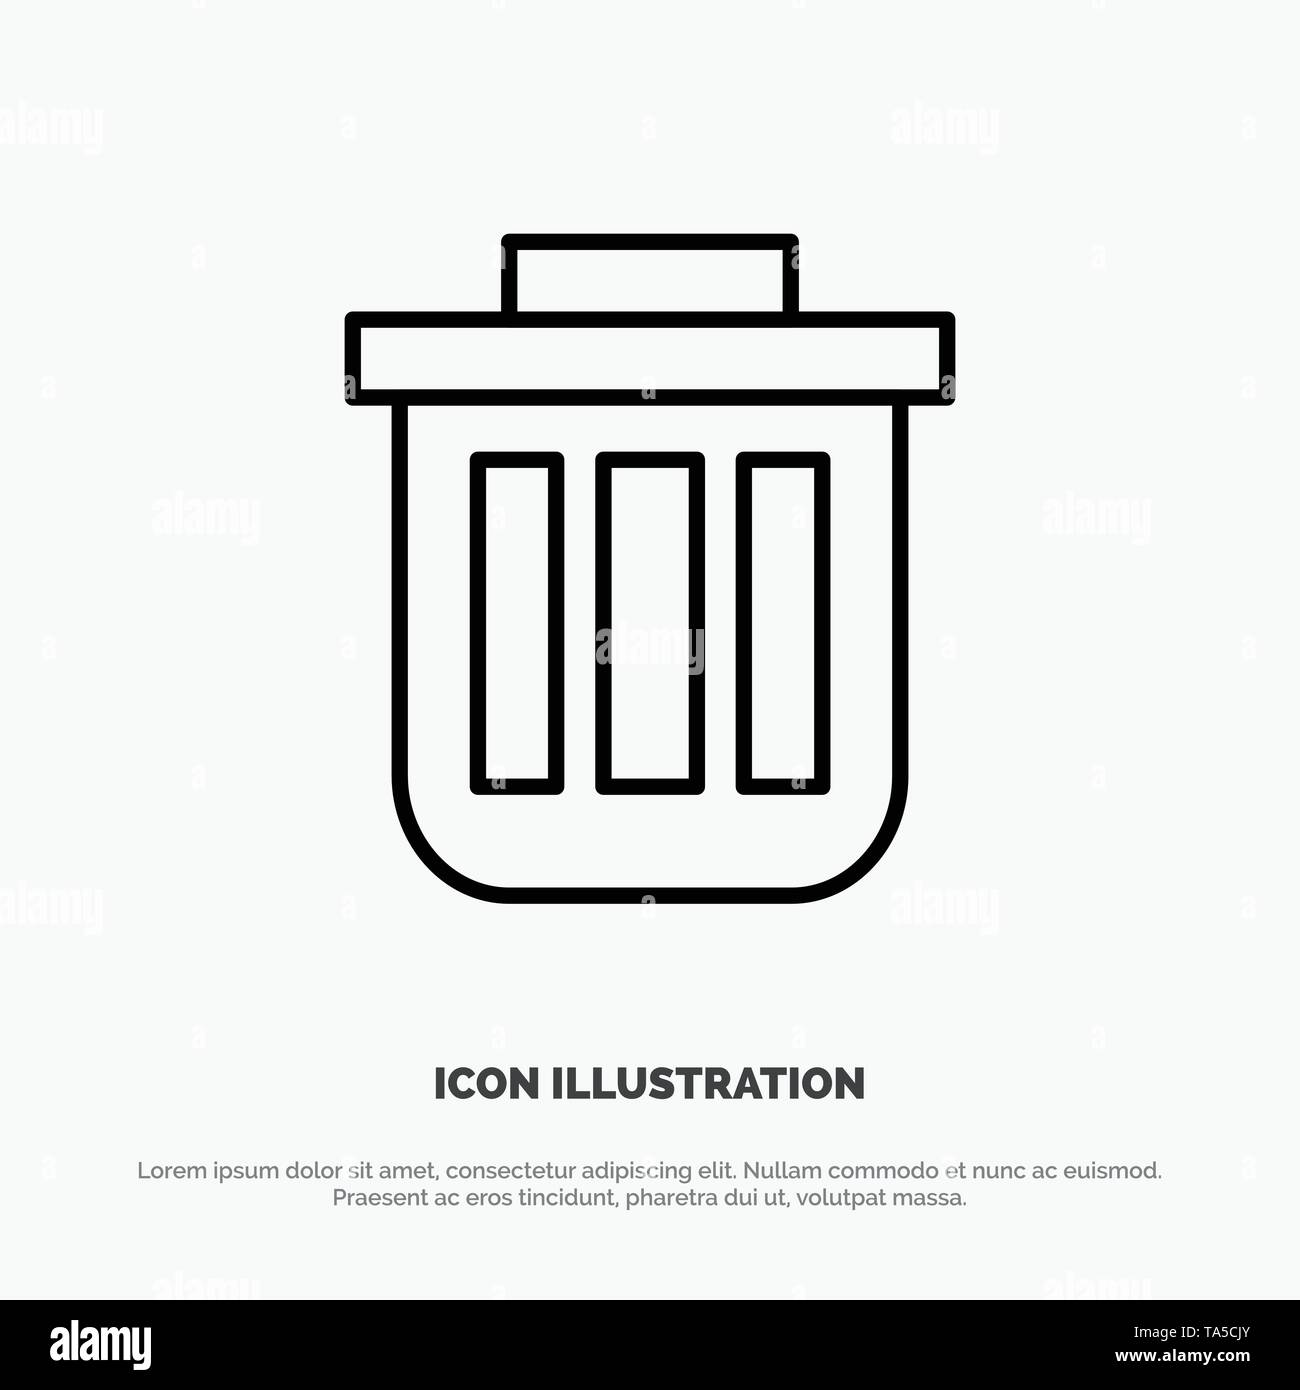 Trash, Basket, Bin, Can, Container, Dustbin, Office Line Icon Vector - Stock Image